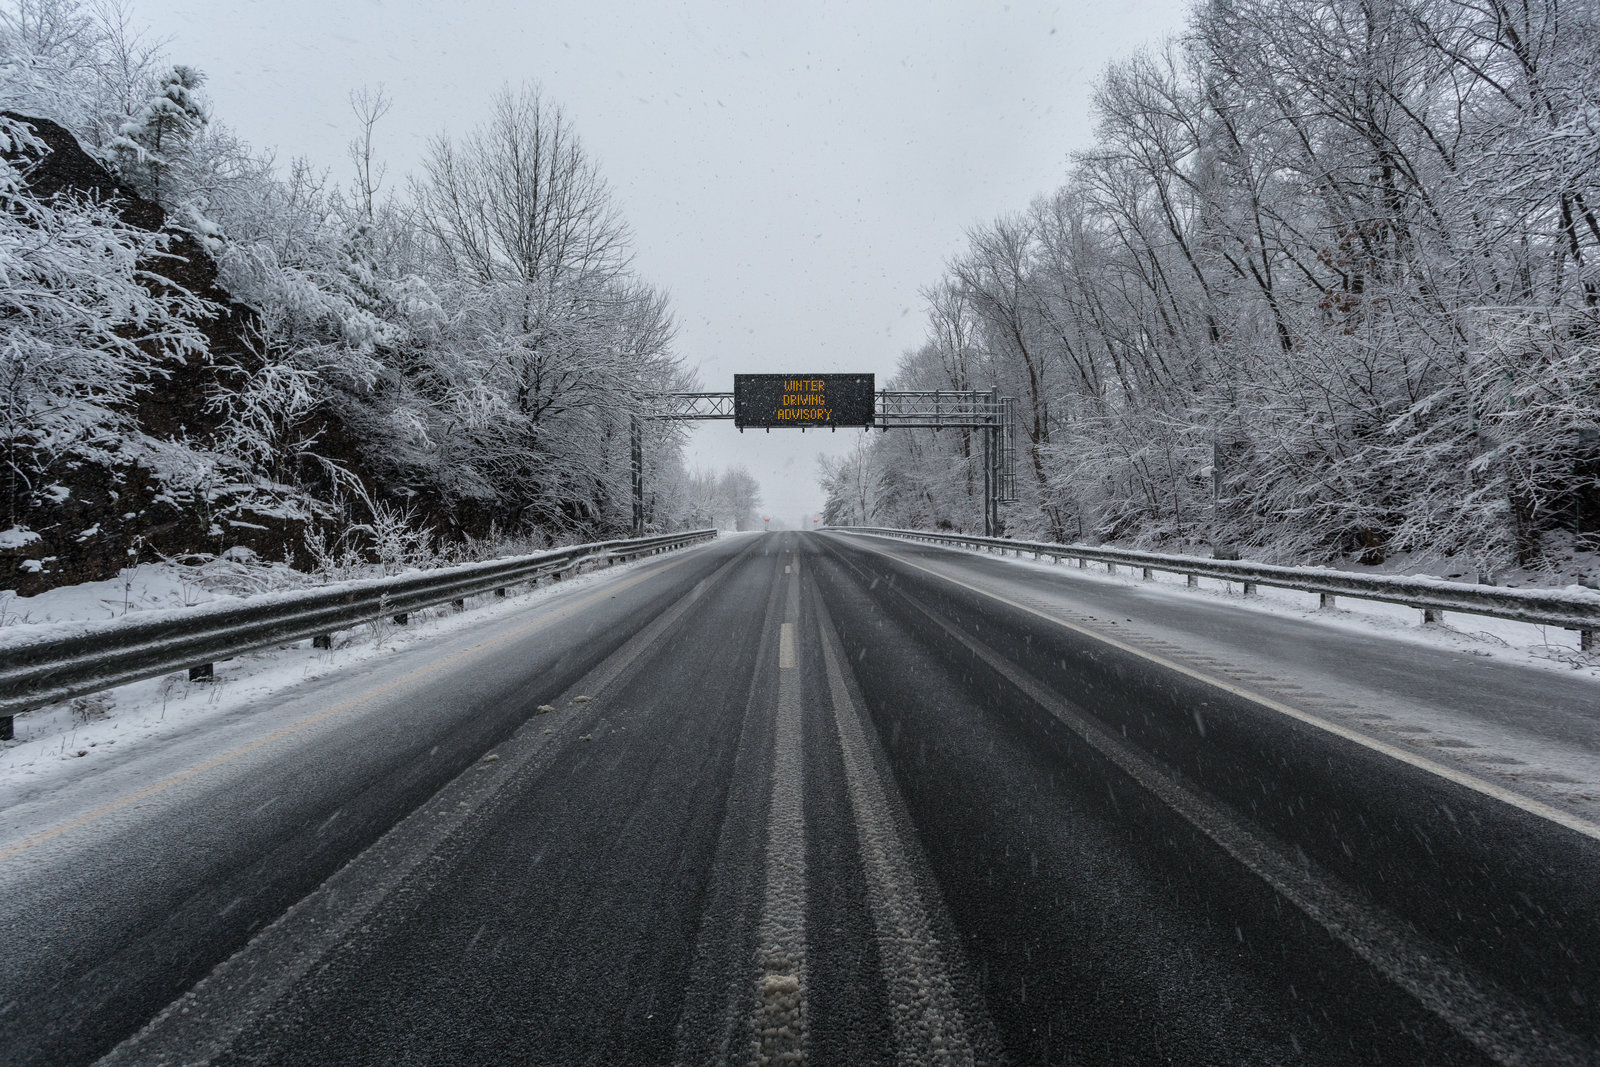 Winter Weather Advisory in effect for Christmas Eve, be careful traveling